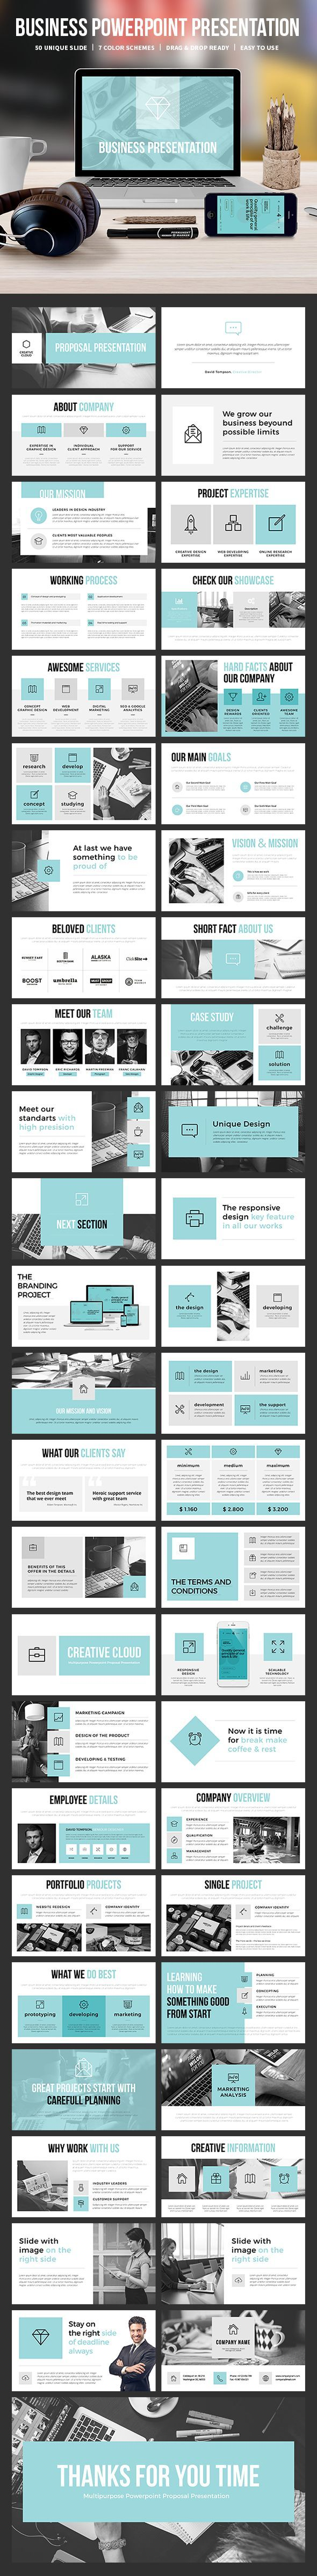 #Business #Powerpoint #Template - Business PowerPoint Templates Download here: https://graphicriver.net/item/business-powerpoint-template/18824707?ref=alena994